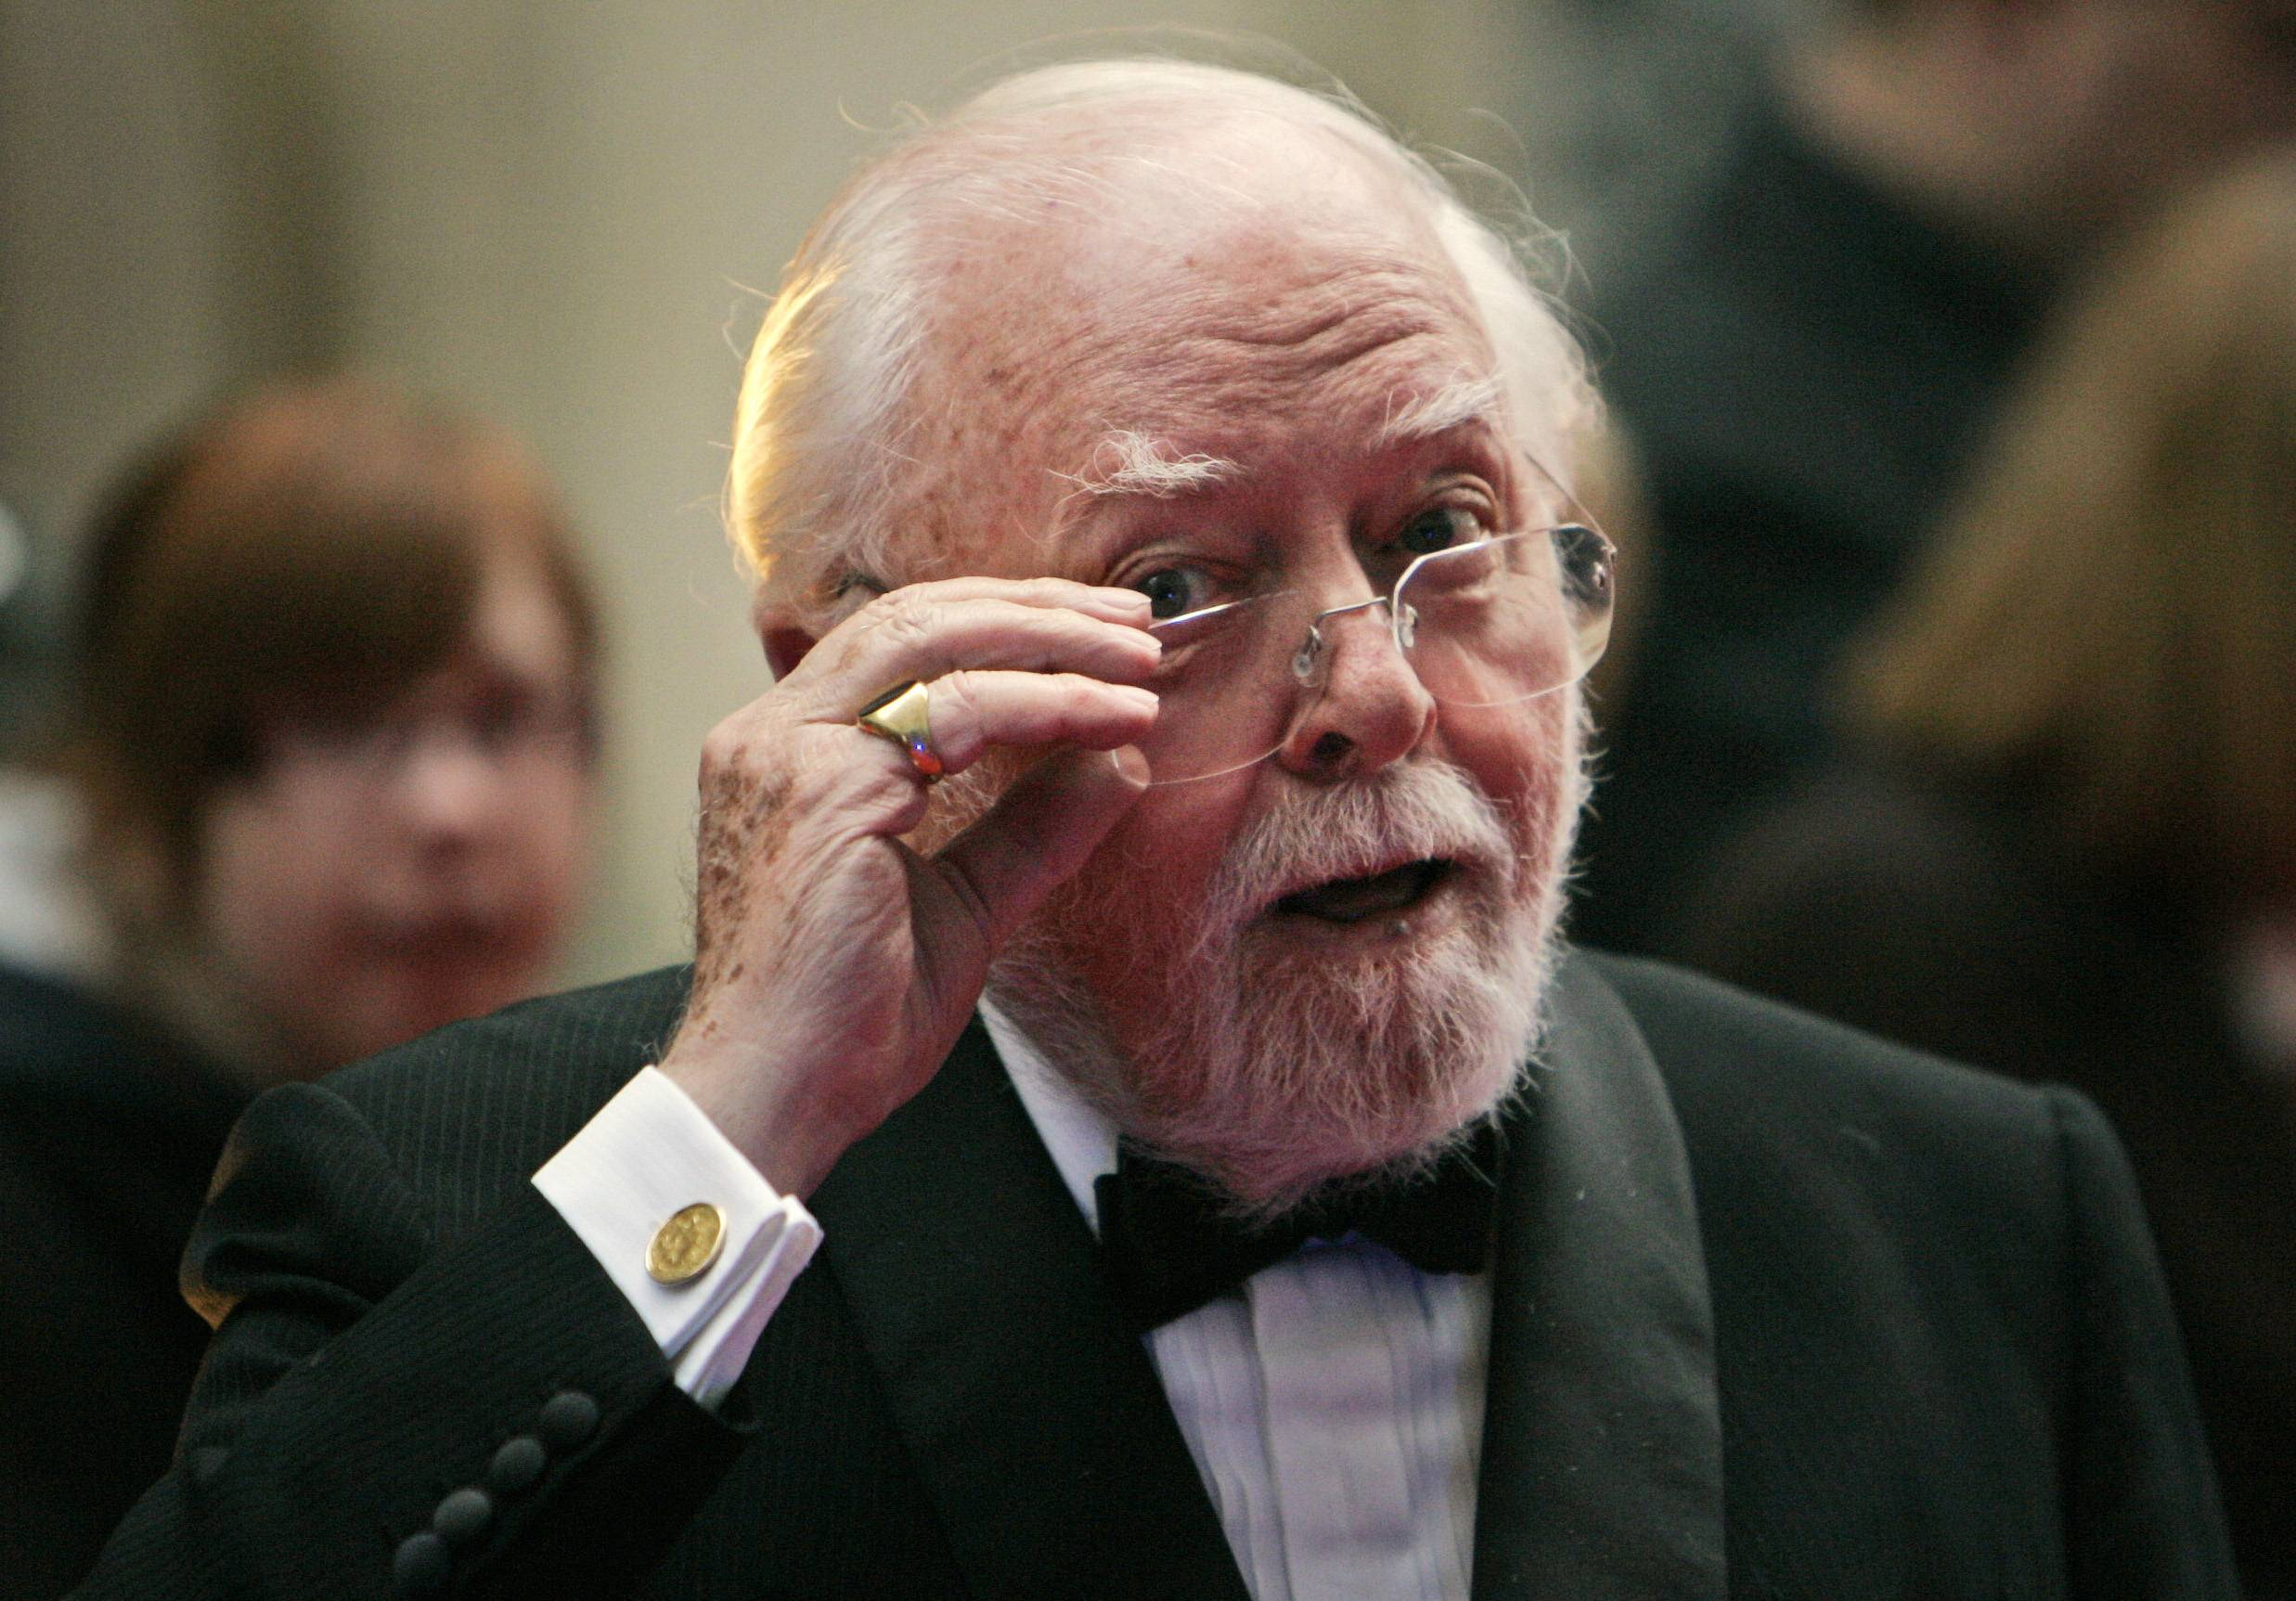 British actor and director Richard Attenborough arrives at the Galaxy British Book Awards in London April 9, 2008, The acclaimed actor and Oscar-winning director, whose film career on both sides of the camera spanned 60 years, died on Sunday. He was 90.